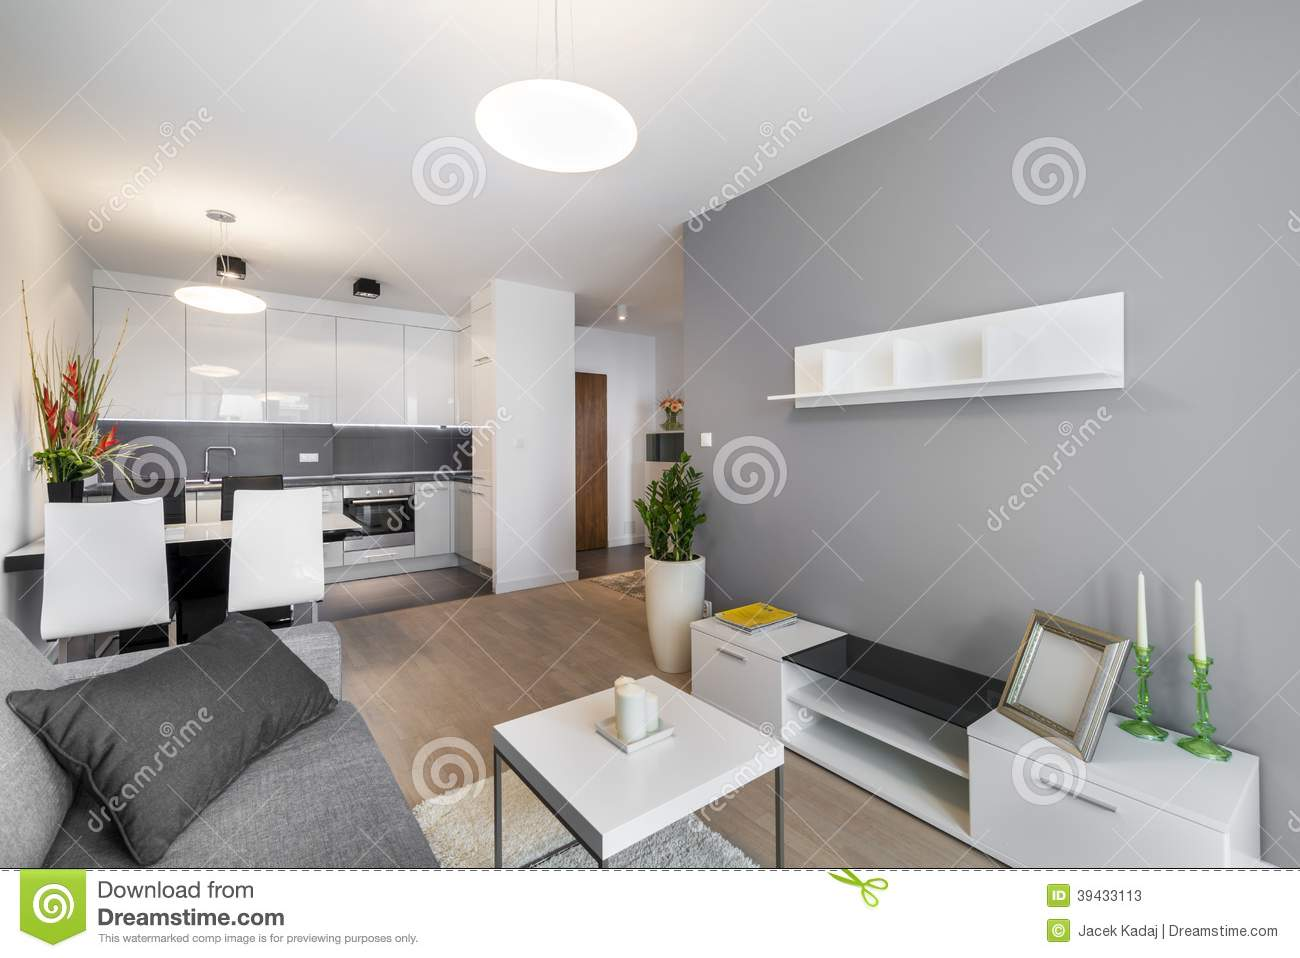 Modern interior design living room stock photo image for Kitchen room interior design